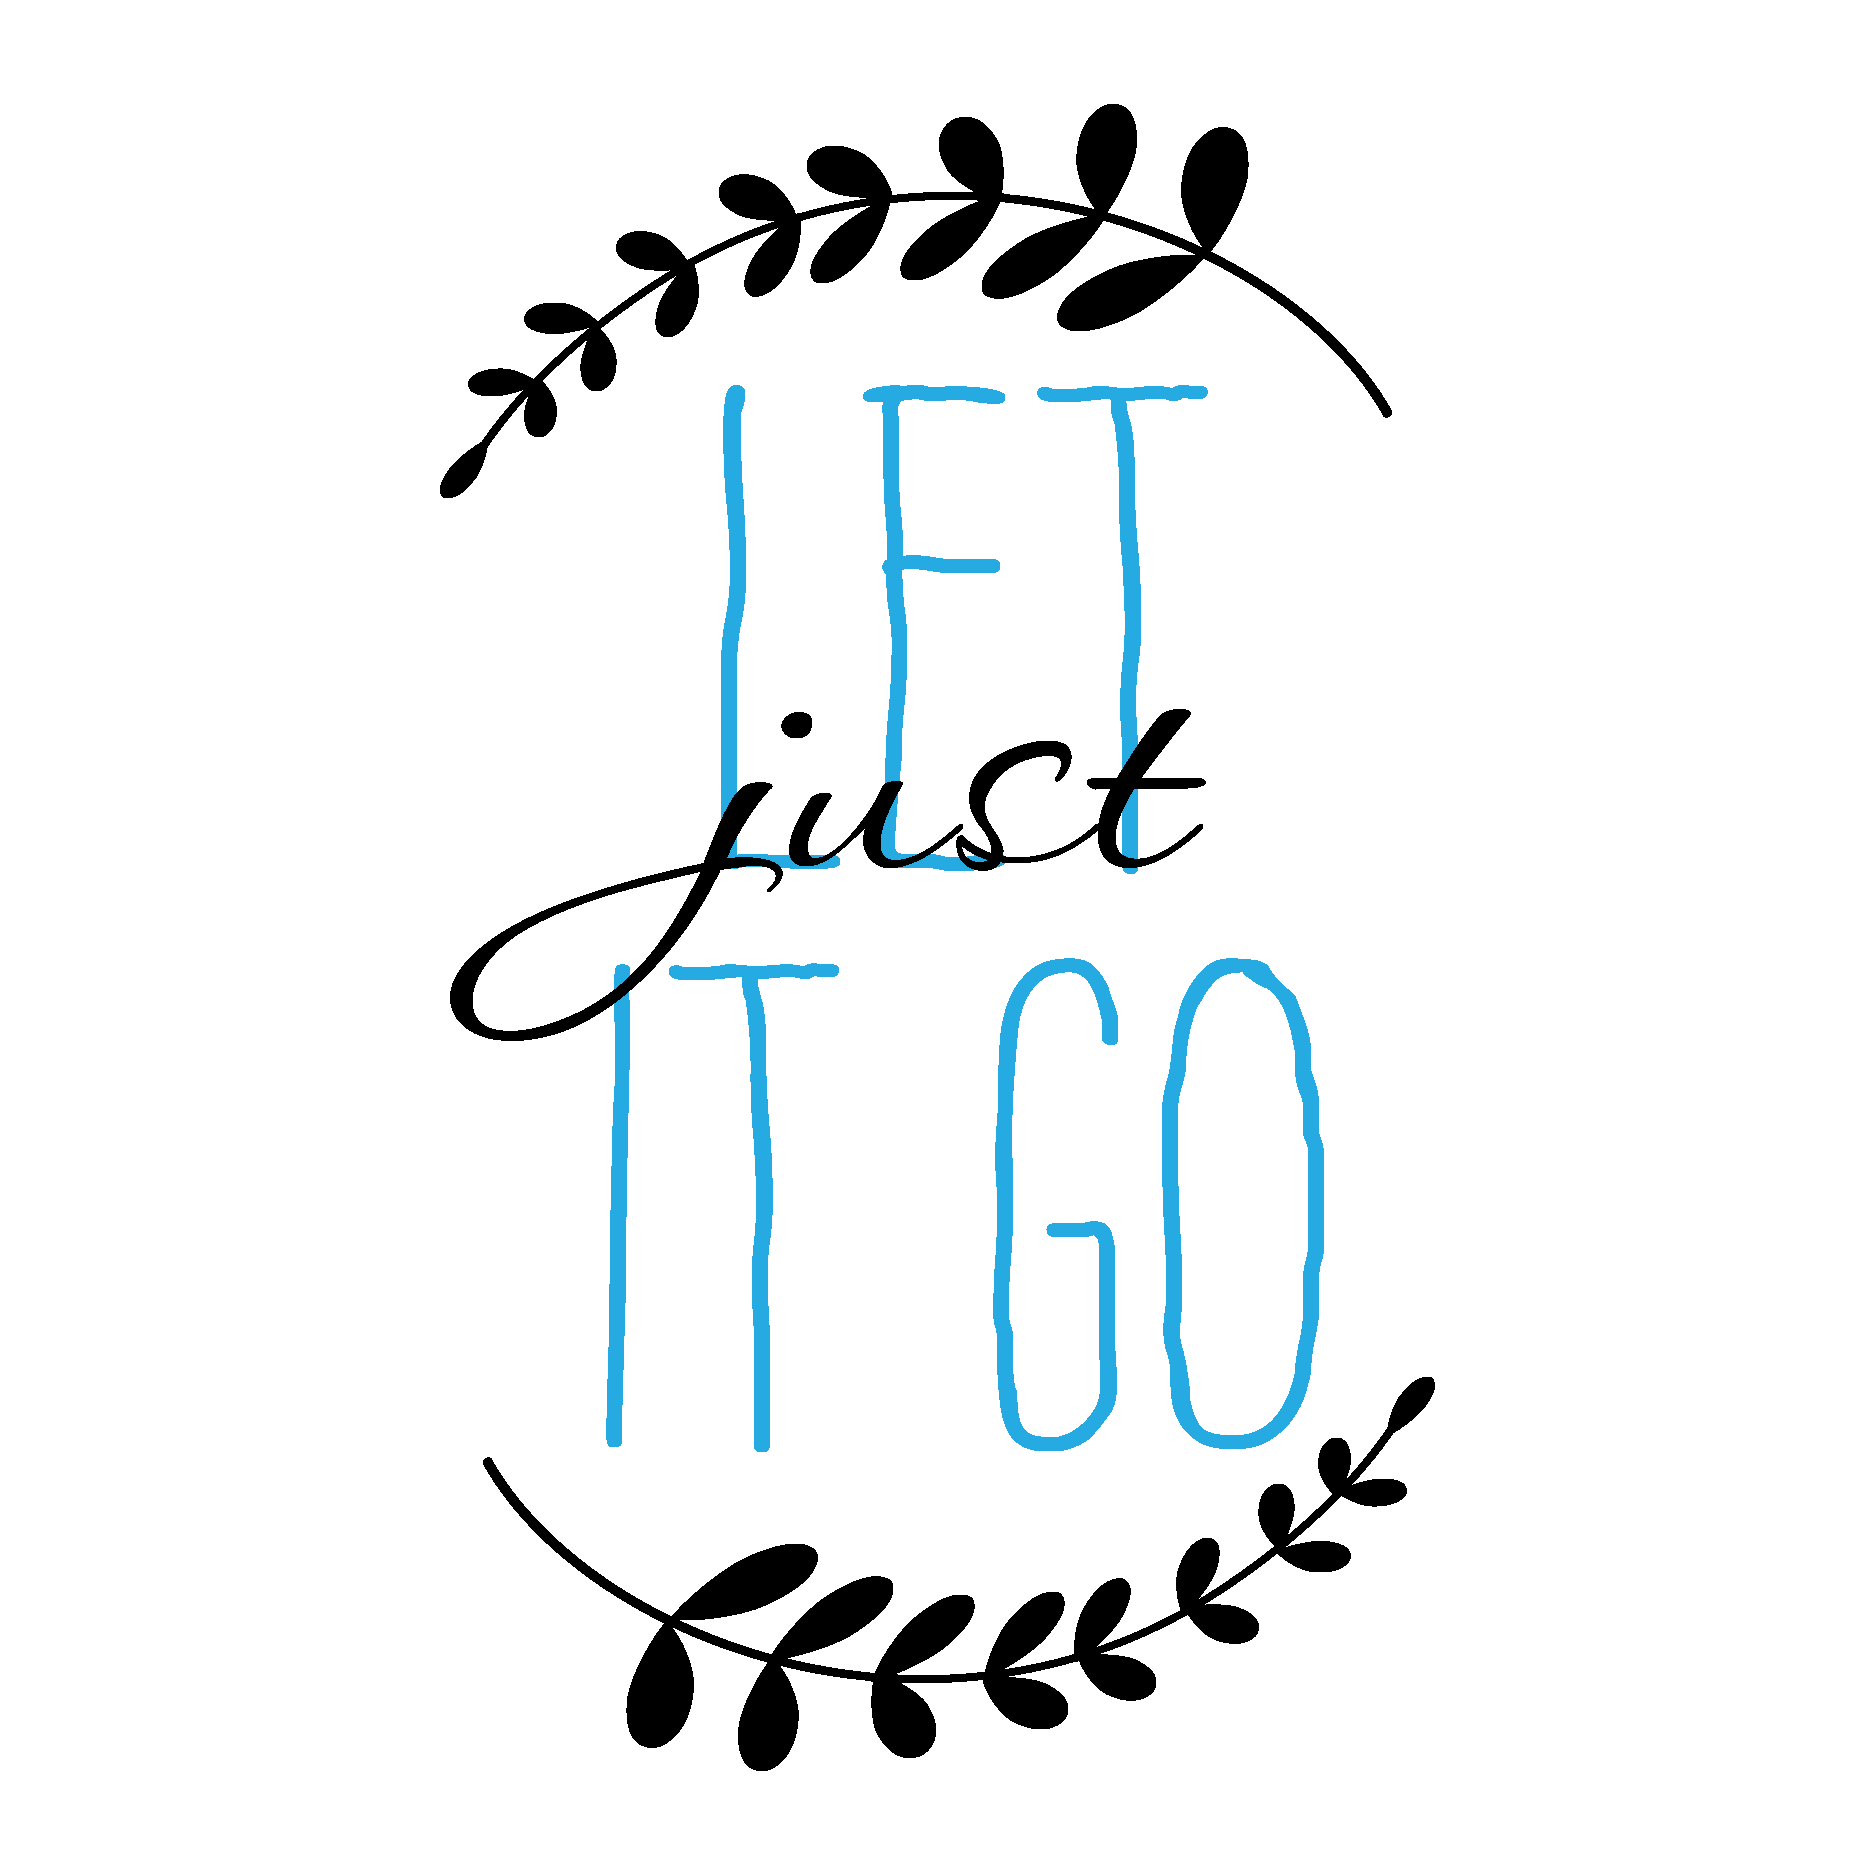 Let It Go Quotes Just Let It Go Wall Quotes™ Decal  Wallquotes